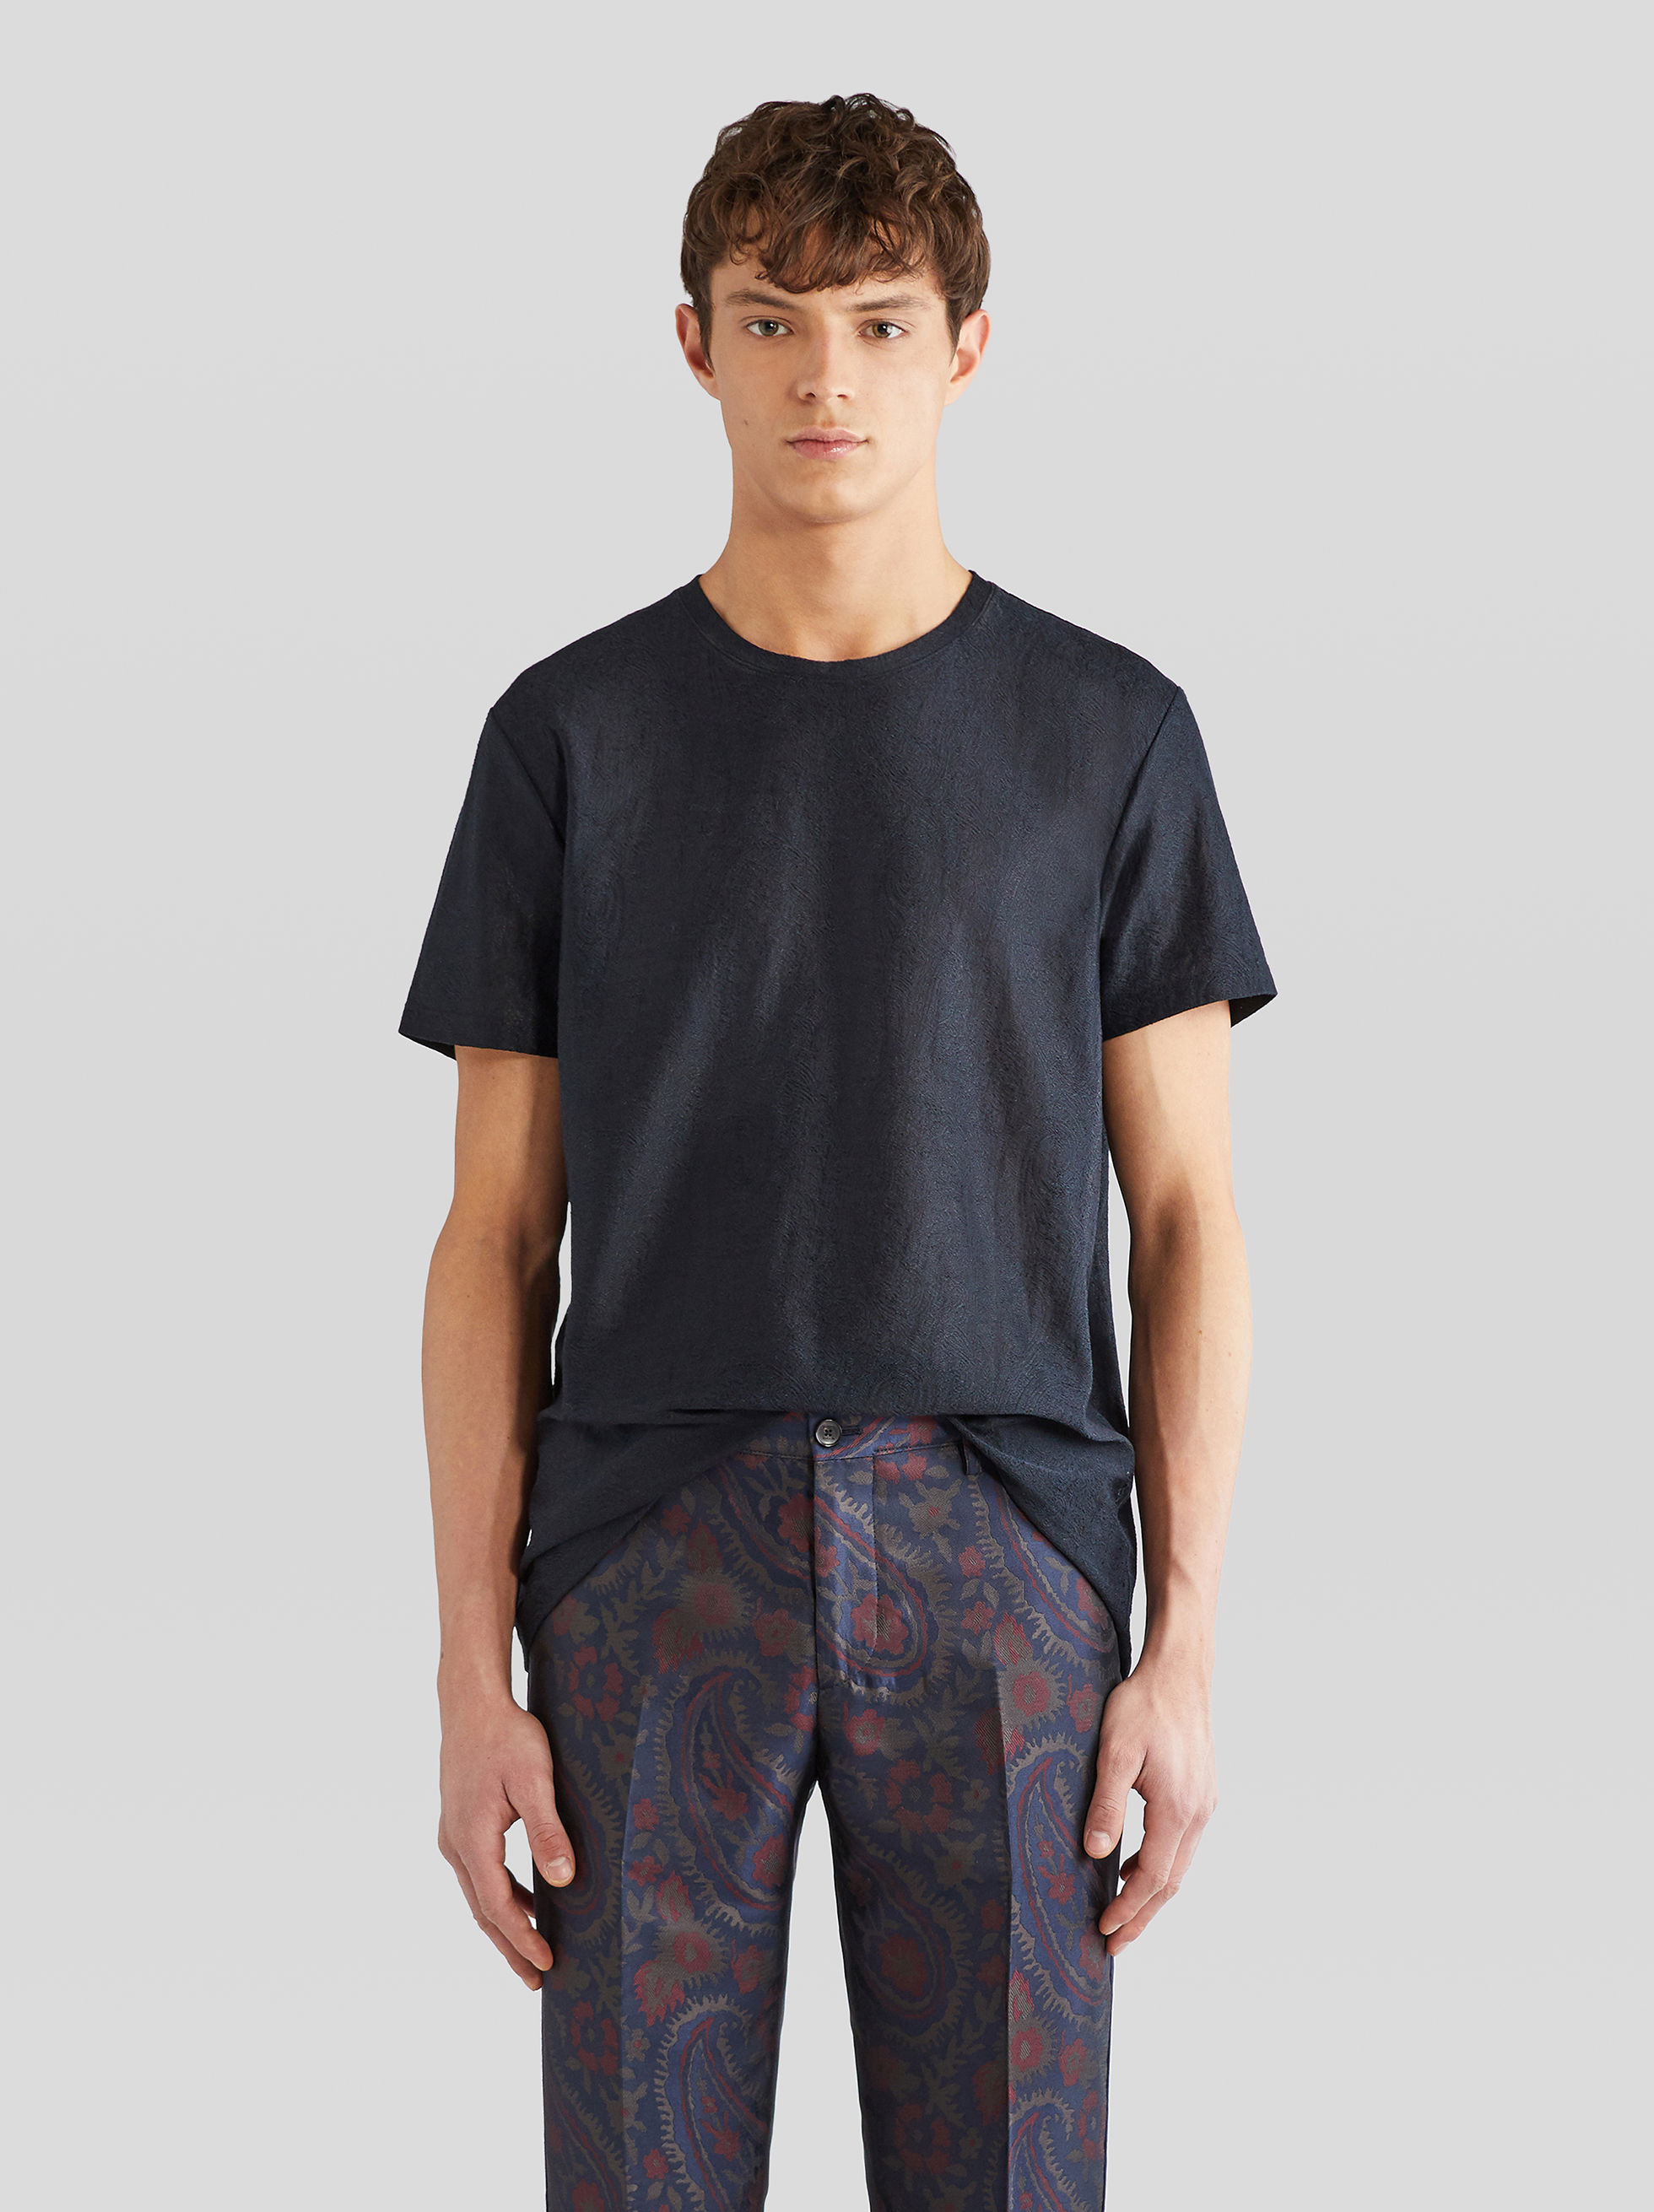 JACQUARD T-SHIRT WITH PAISLEY PATTERNS